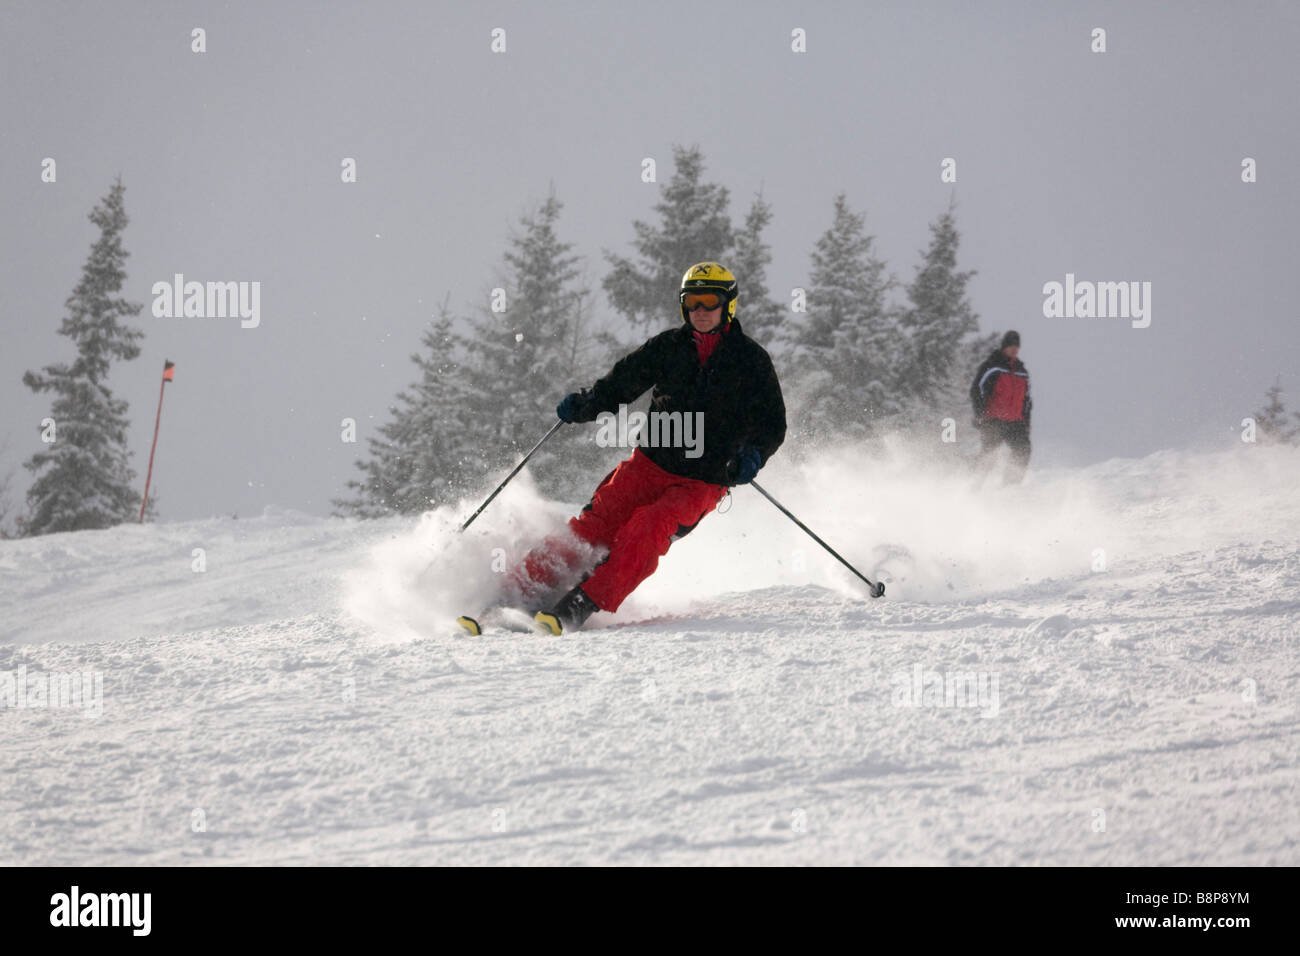 Austria Europe Skier skiing downhill with fresh snowfall on ski slope piste in Austrian Alps in winter snow Stock Photo